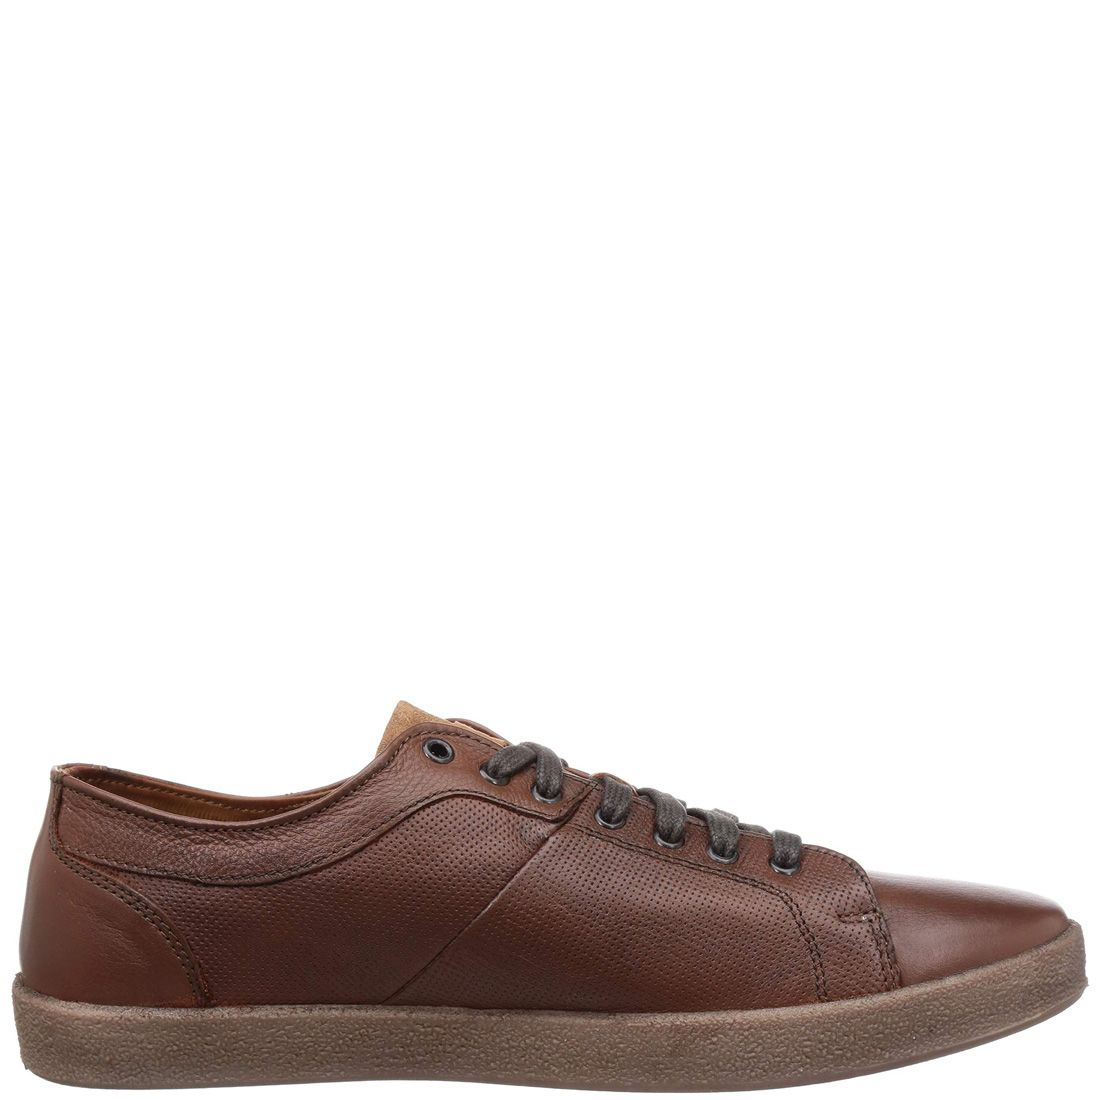 LEE COOPER CASUAL SHOE FOR MEN LC-LC1196A